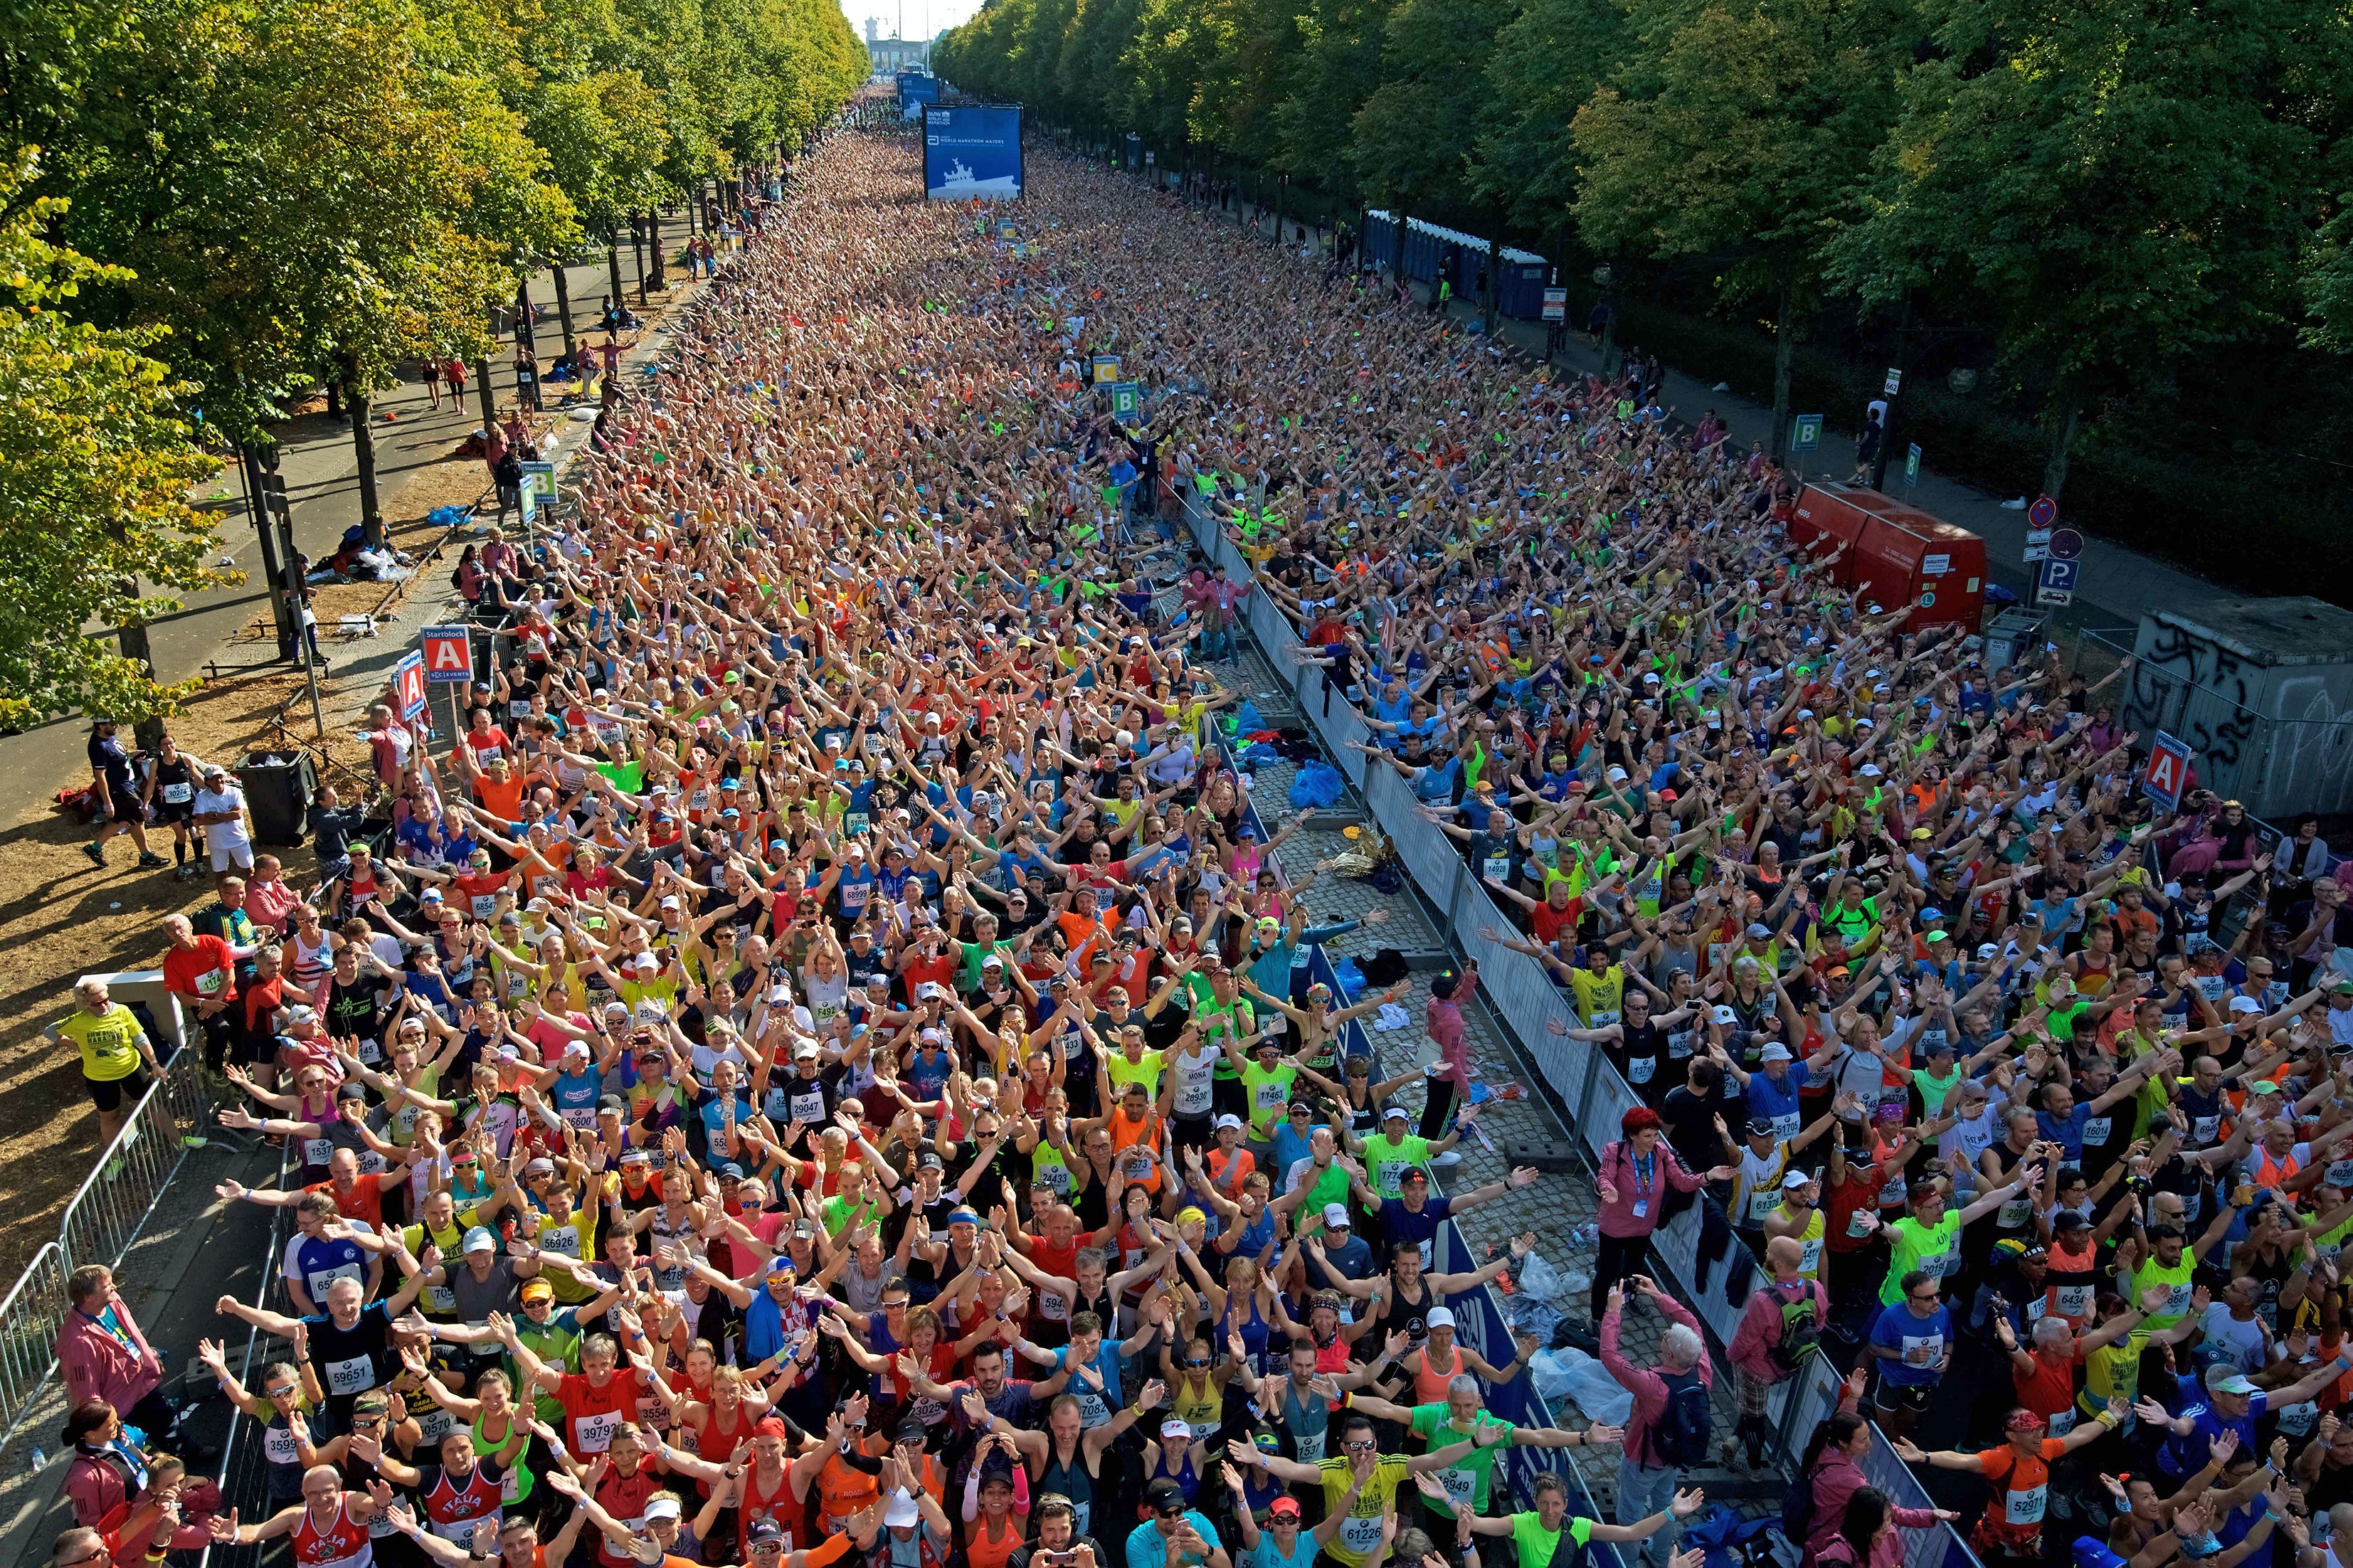 There will be no rescheduled event to replace the cancelled BMW Berlin-Marathon in 2020